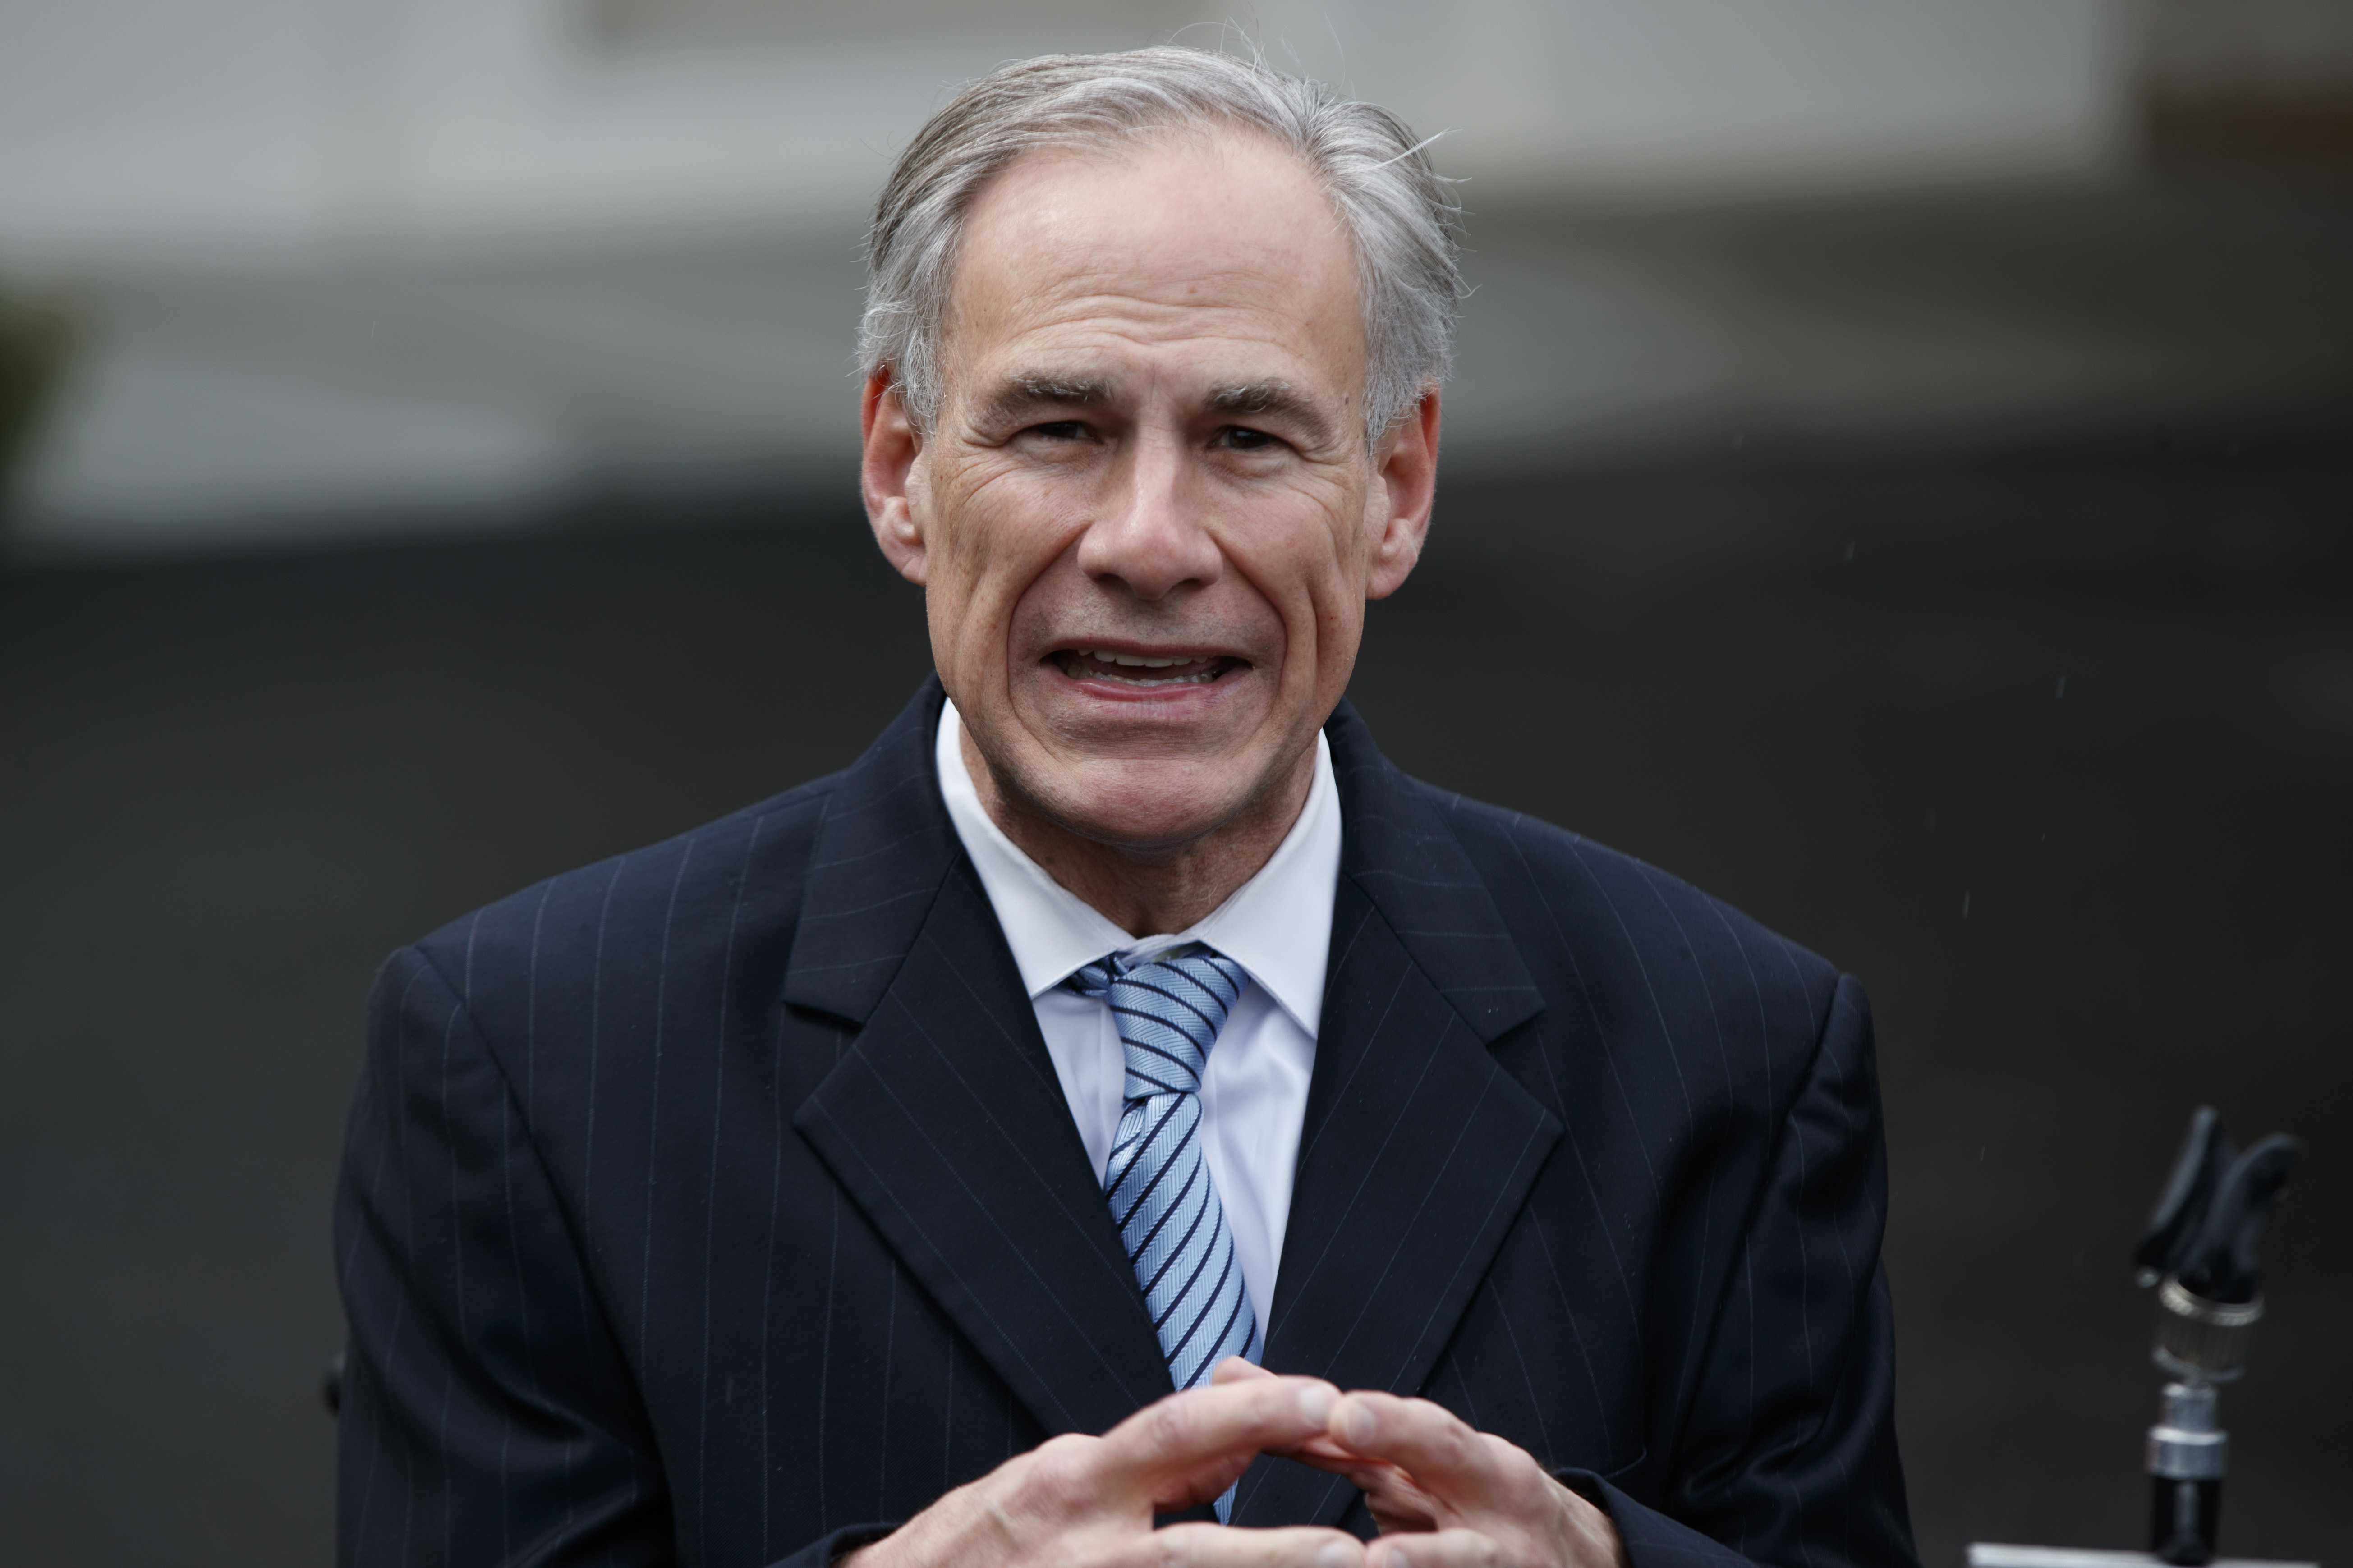 Gov. Greg Abbott, R-Texas, talks to reporters after meeting with President Donald Trump at the White House, Friday, March 24, 2017, in Washington. (AP Photo/Evan Vucci)